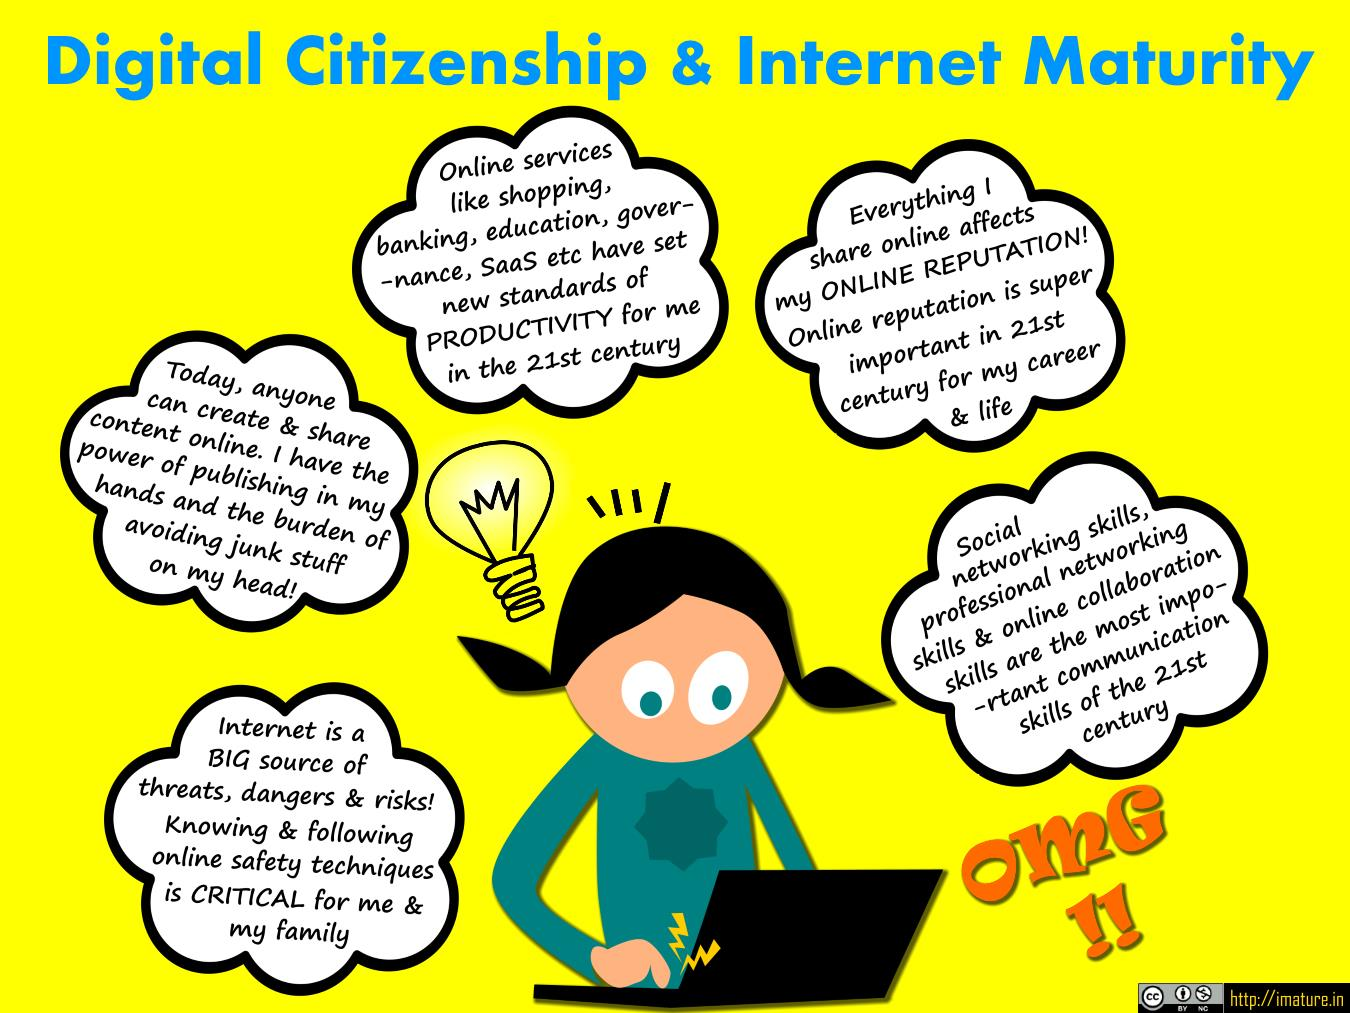 Digital Citizenship and Internet Maturity graphic